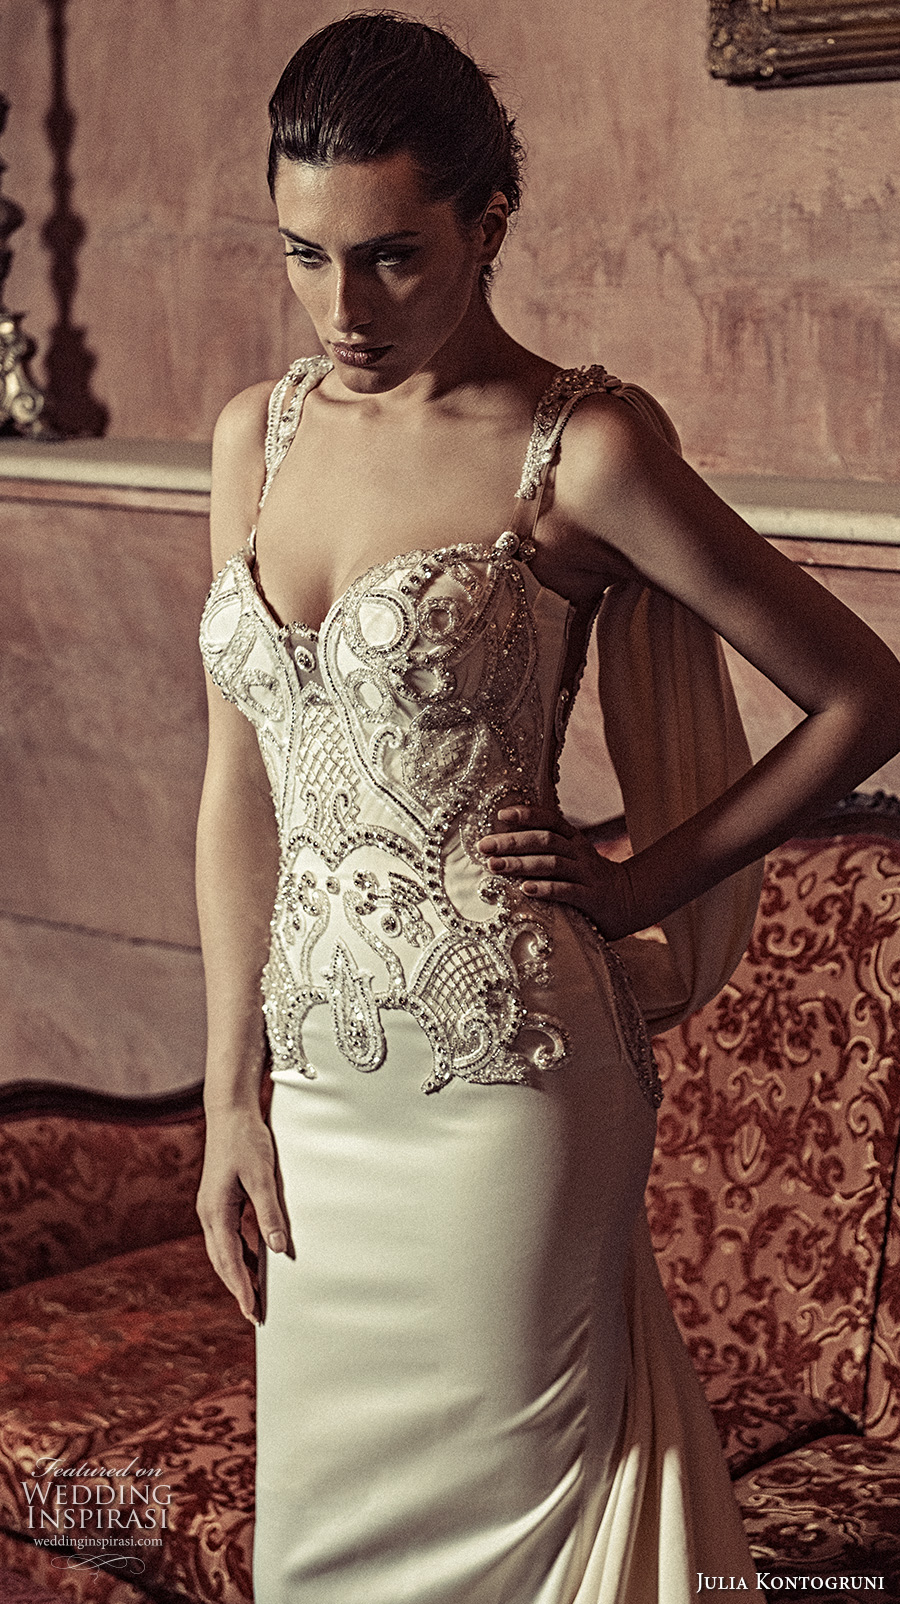 julia kontogruni 2017 bridal sleeveless strap sweetheart neckline bustier heavily embellished bodice glamorous elegant sheath wedding dress illusion back long train (16) zv